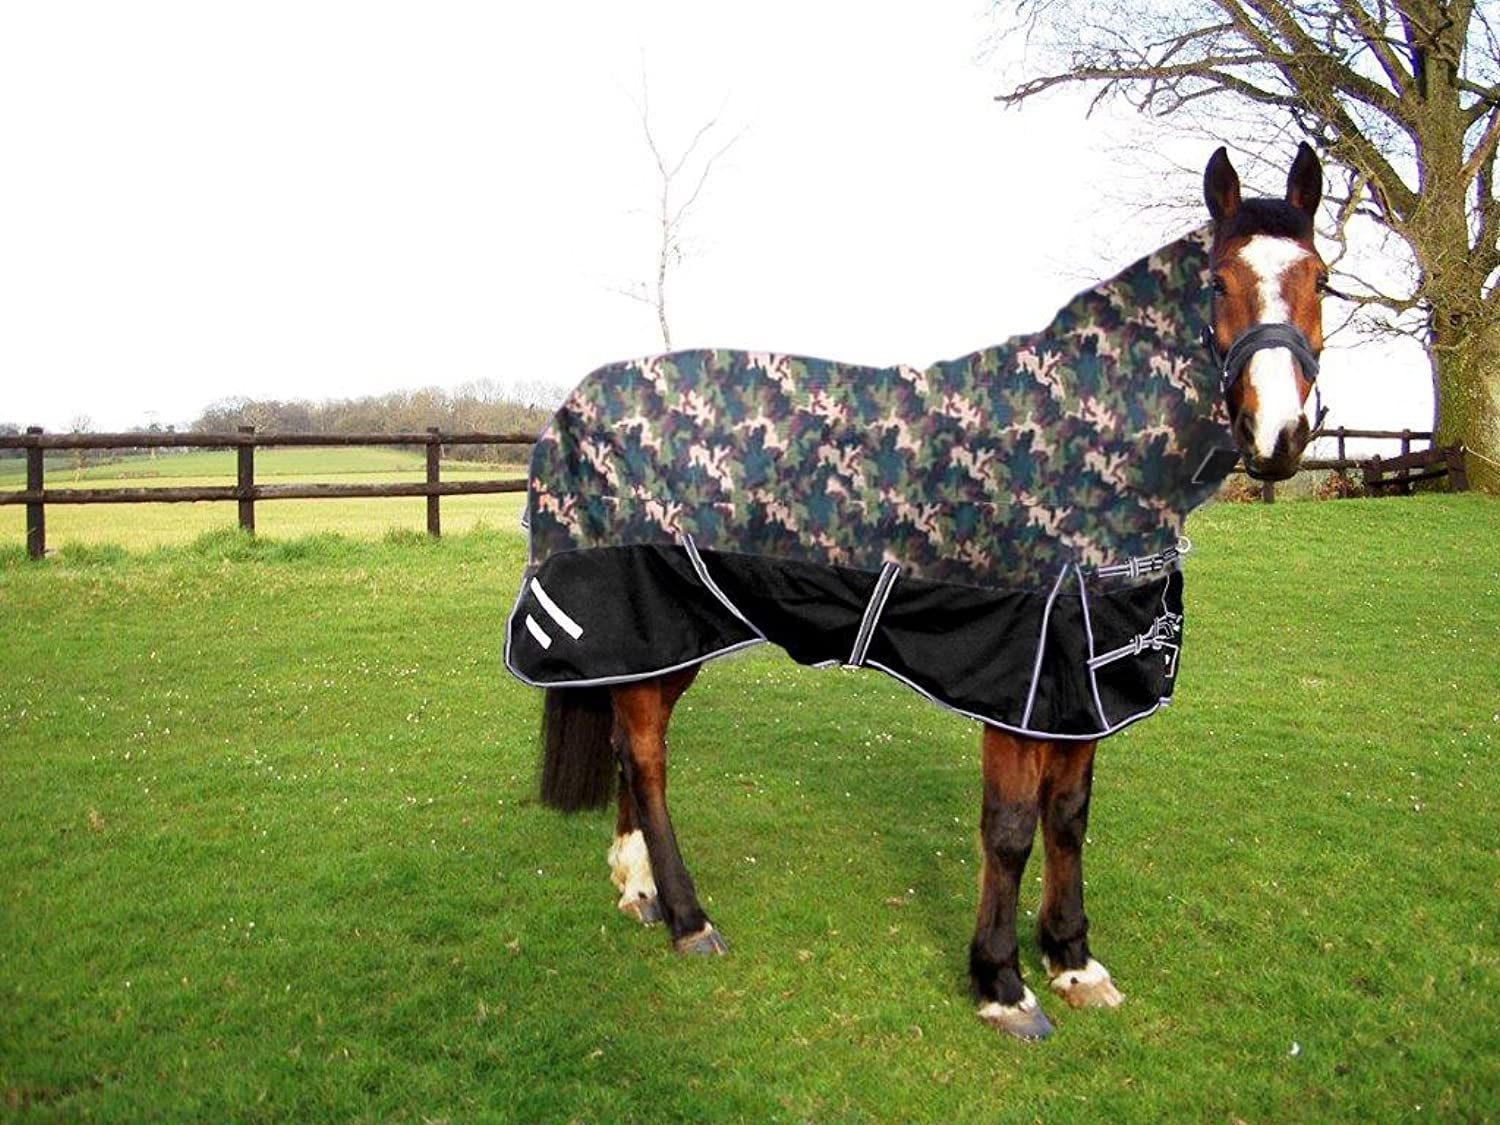 GEE TAC 350G1200D HEAVY DUTY TURNOUT COMBO HORSE RUG 6.3 ALL SIZES, EQUESTRIAN